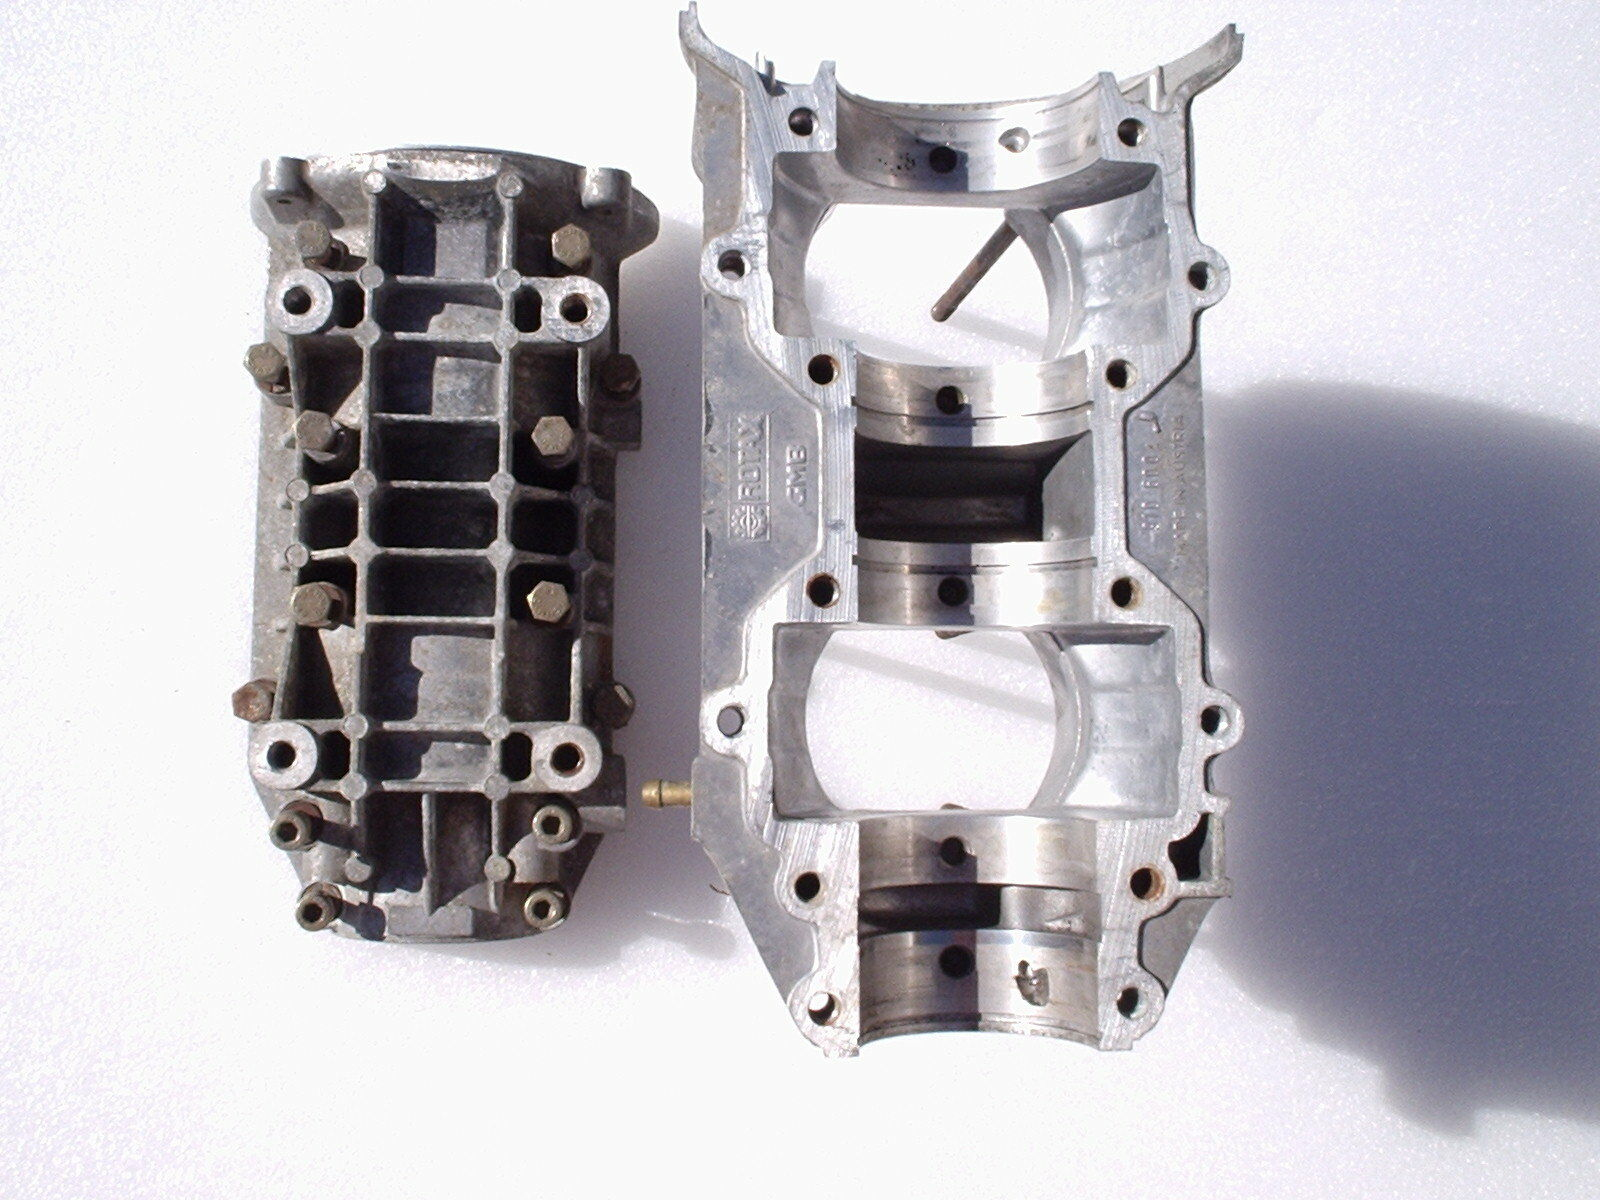 Rotax  503 aircraft engine provision four crankcases